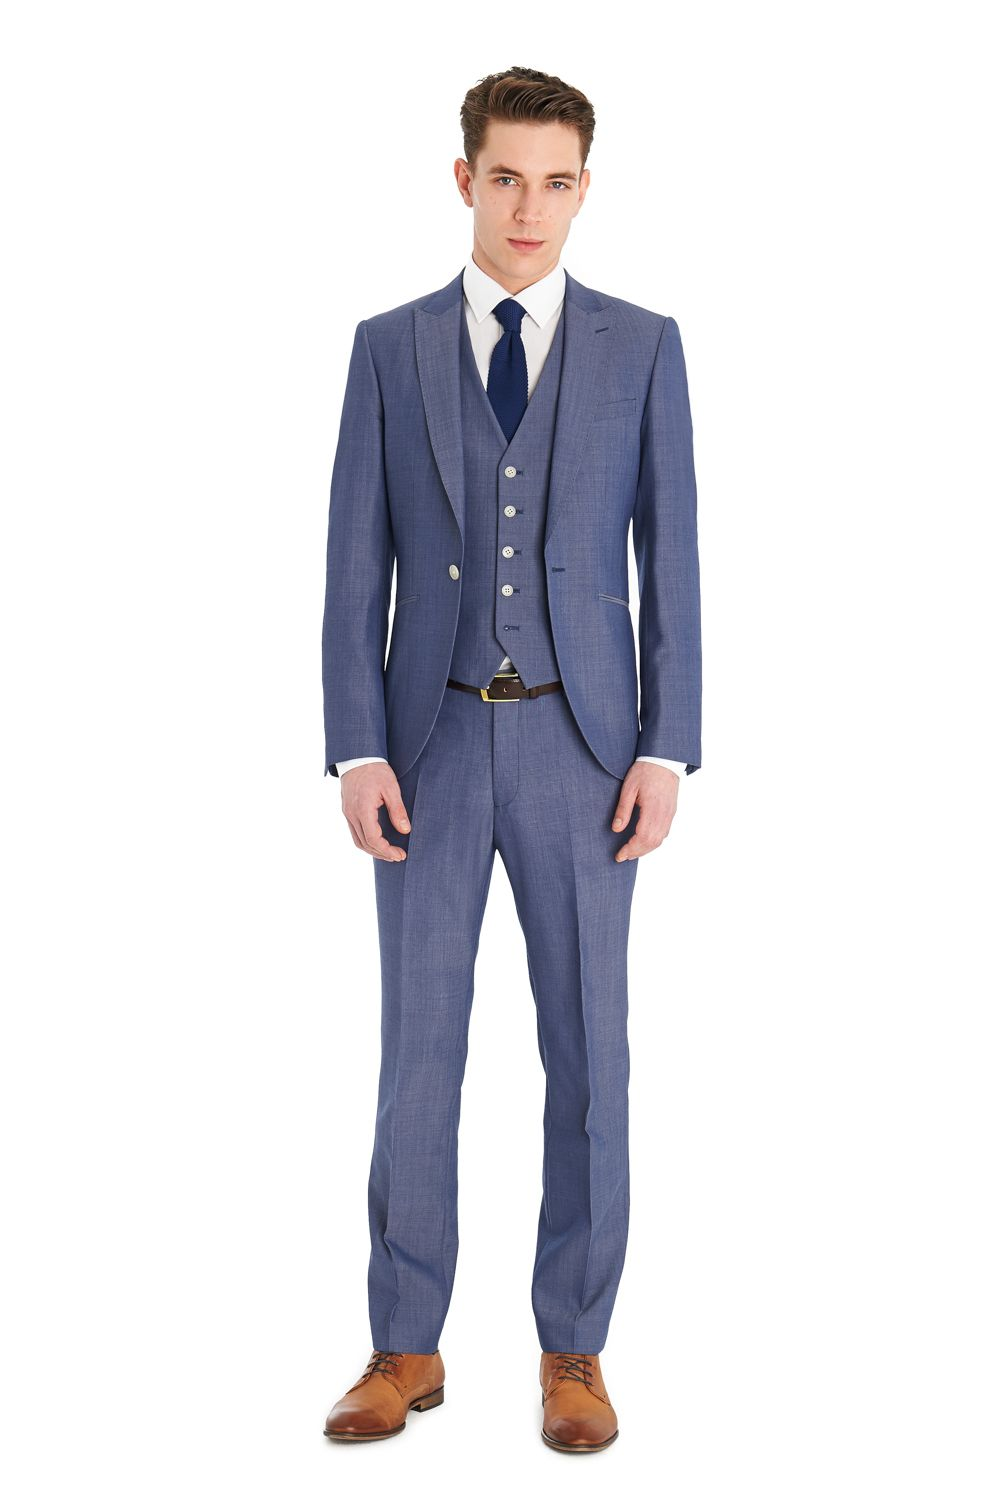 blue suit - Google zoeken | suits | Pinterest | Light blue suit ...